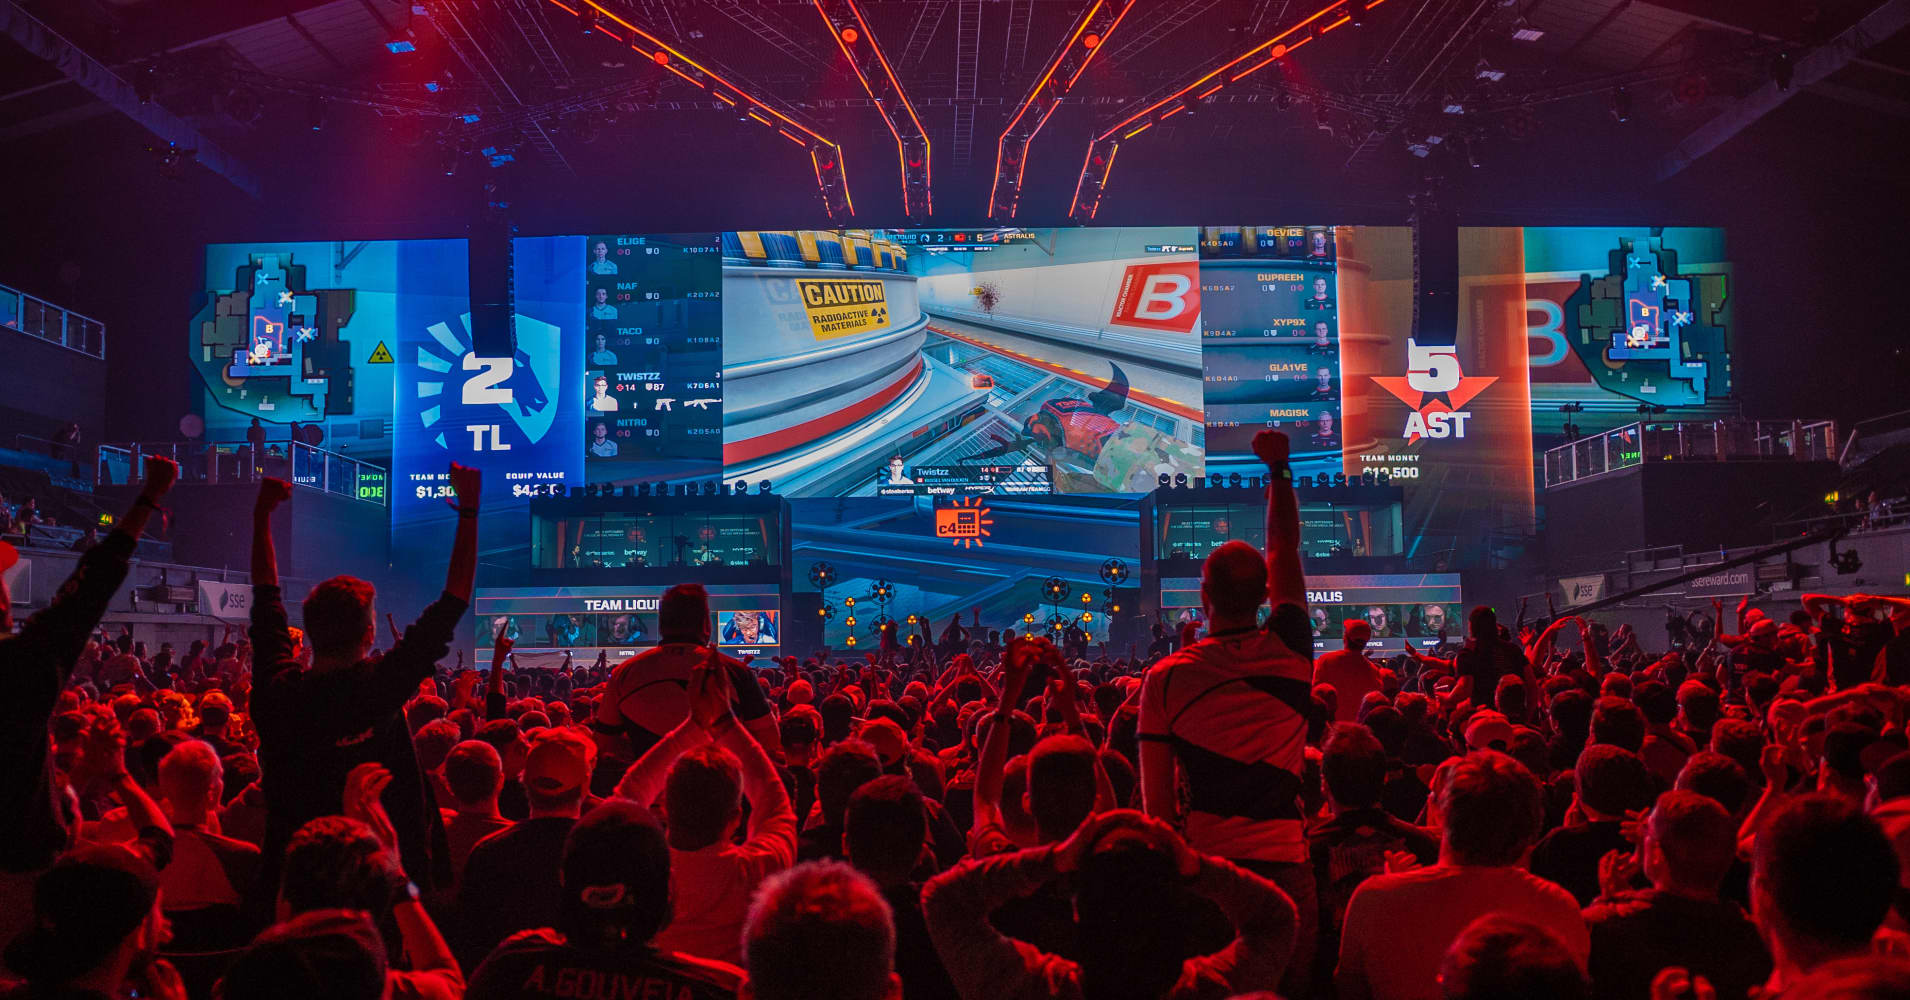 Skillz hands out thousands in prize money daily to mobile gamers: Here's what it means for esports